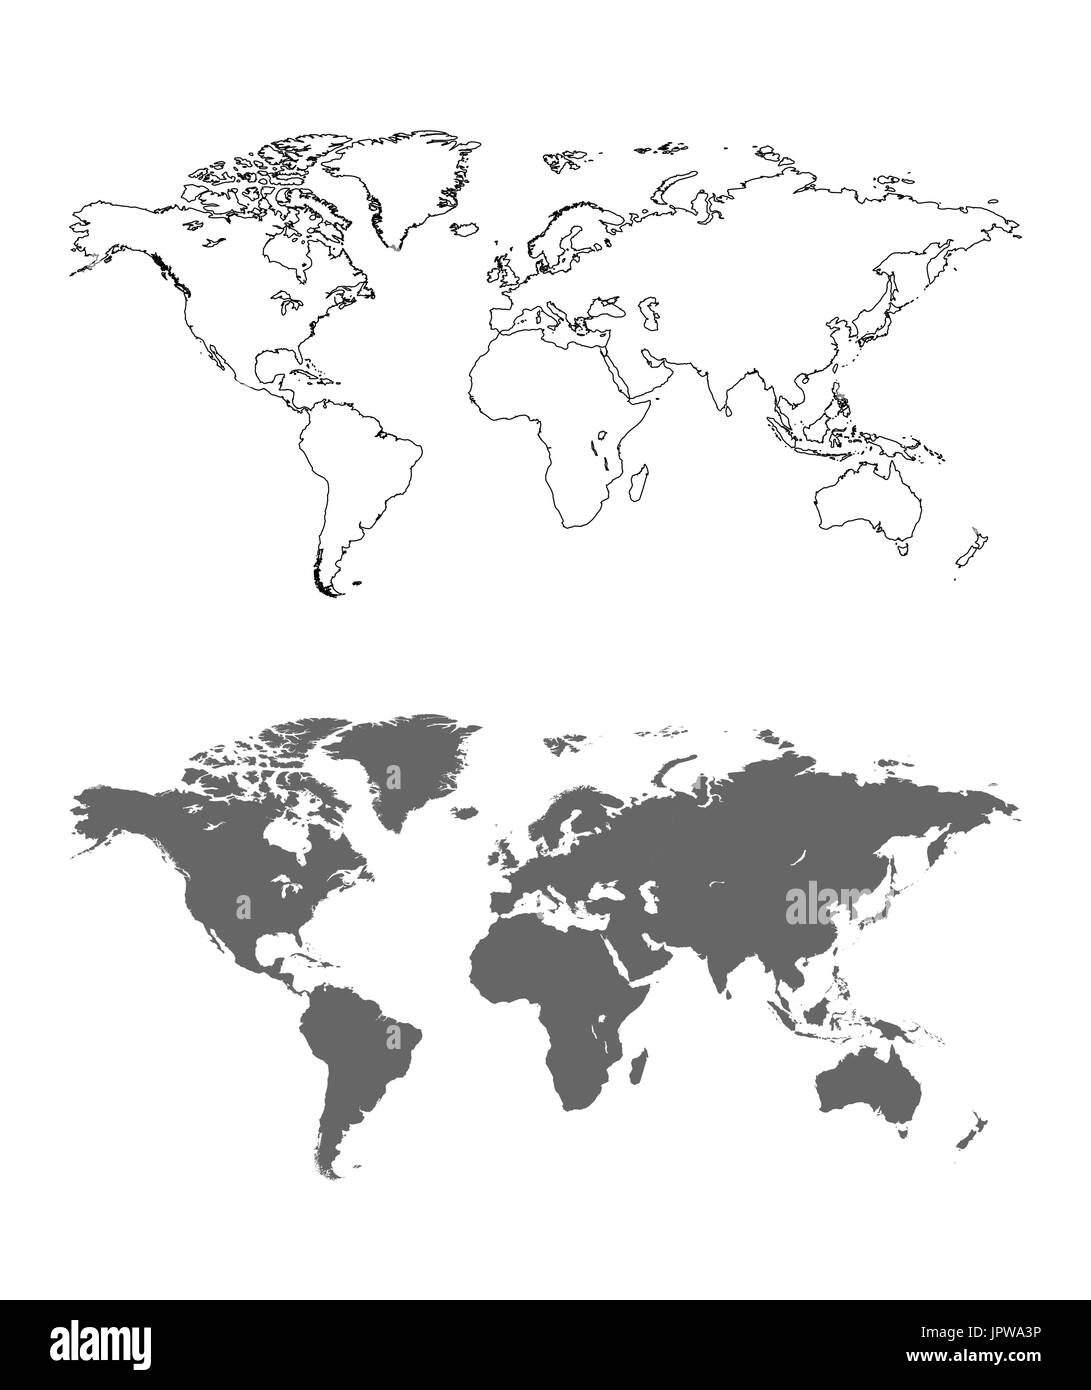 Vector Outline of the world map - Stock Vector